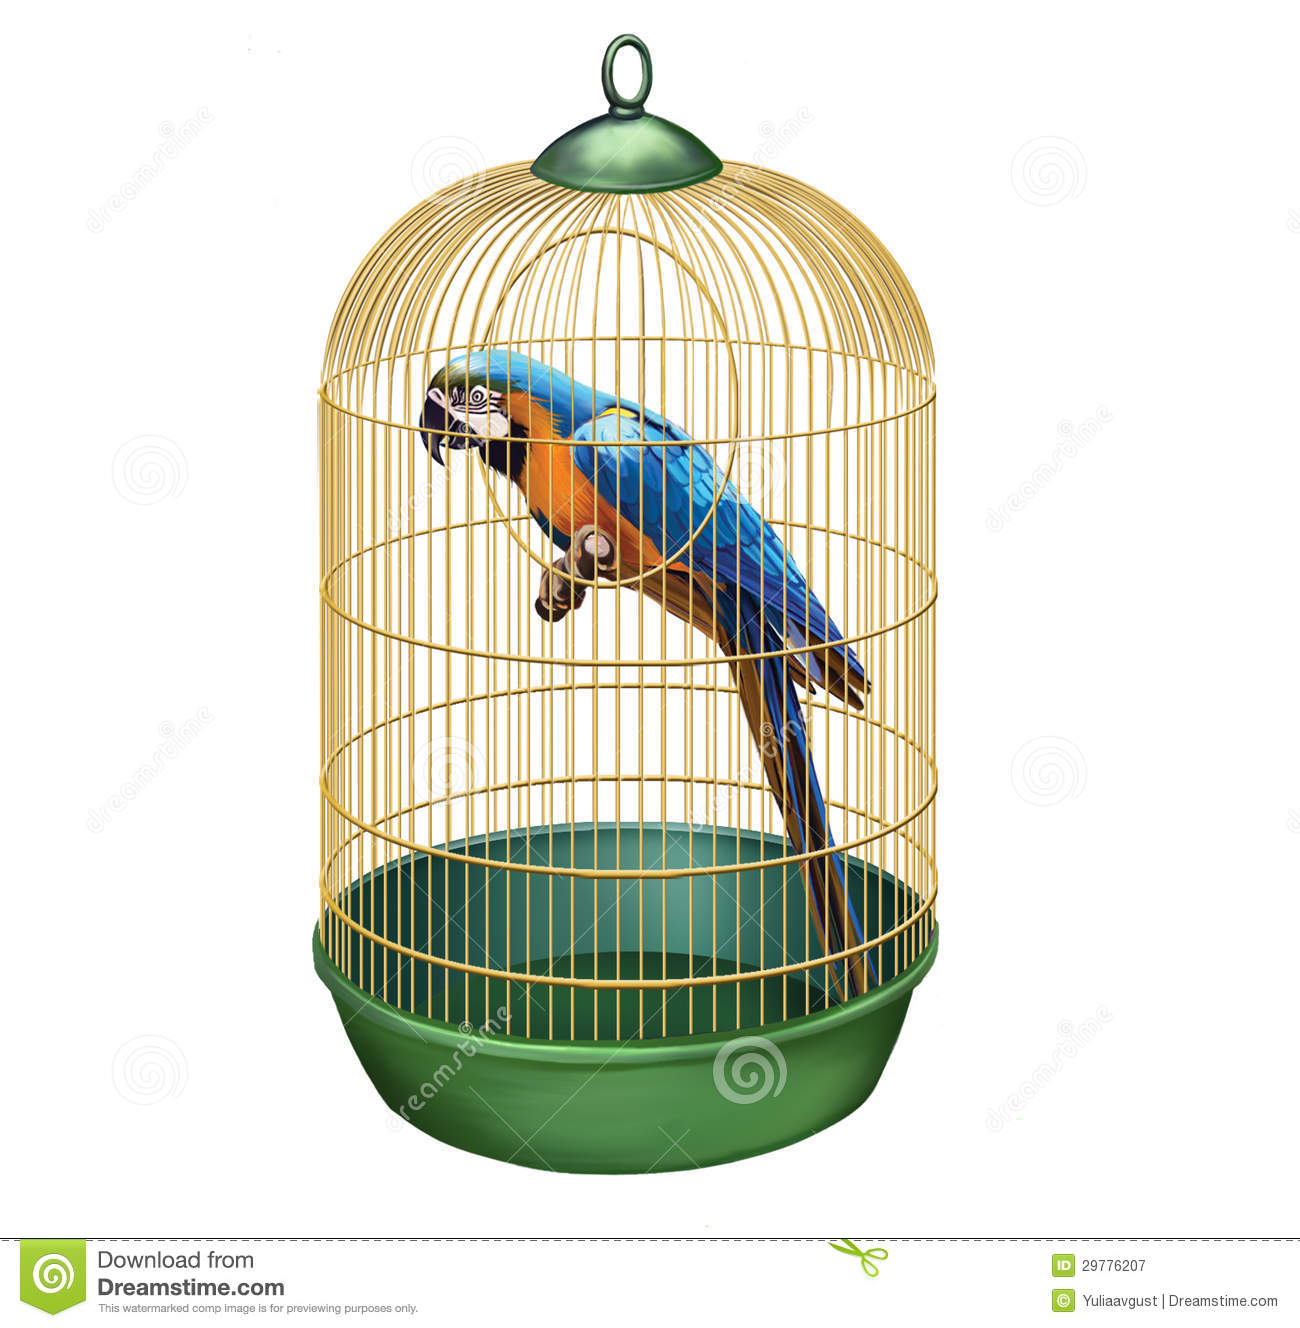 Royalty Free Stock Photography: Parrot in a retro cage. macaw in bird ...